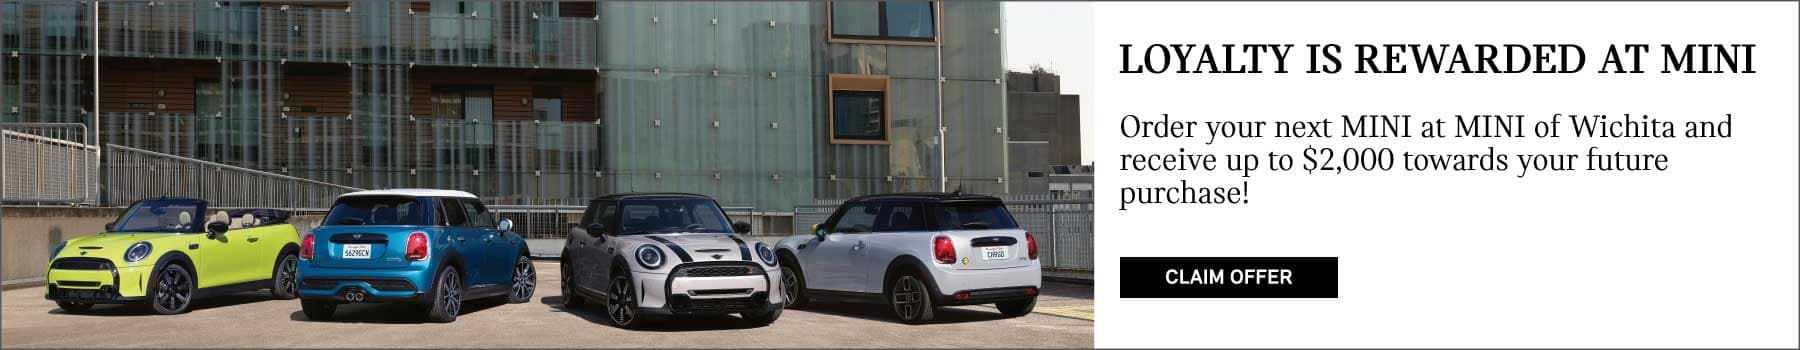 Loyalty is rewarded at MINI. Order your next MINI at MINI of Wichita and receive up to $2,000 towards your future purchase. Click to claim offer. Image shows a family of 2022 MINI's parked outside in front of an industrial style building.